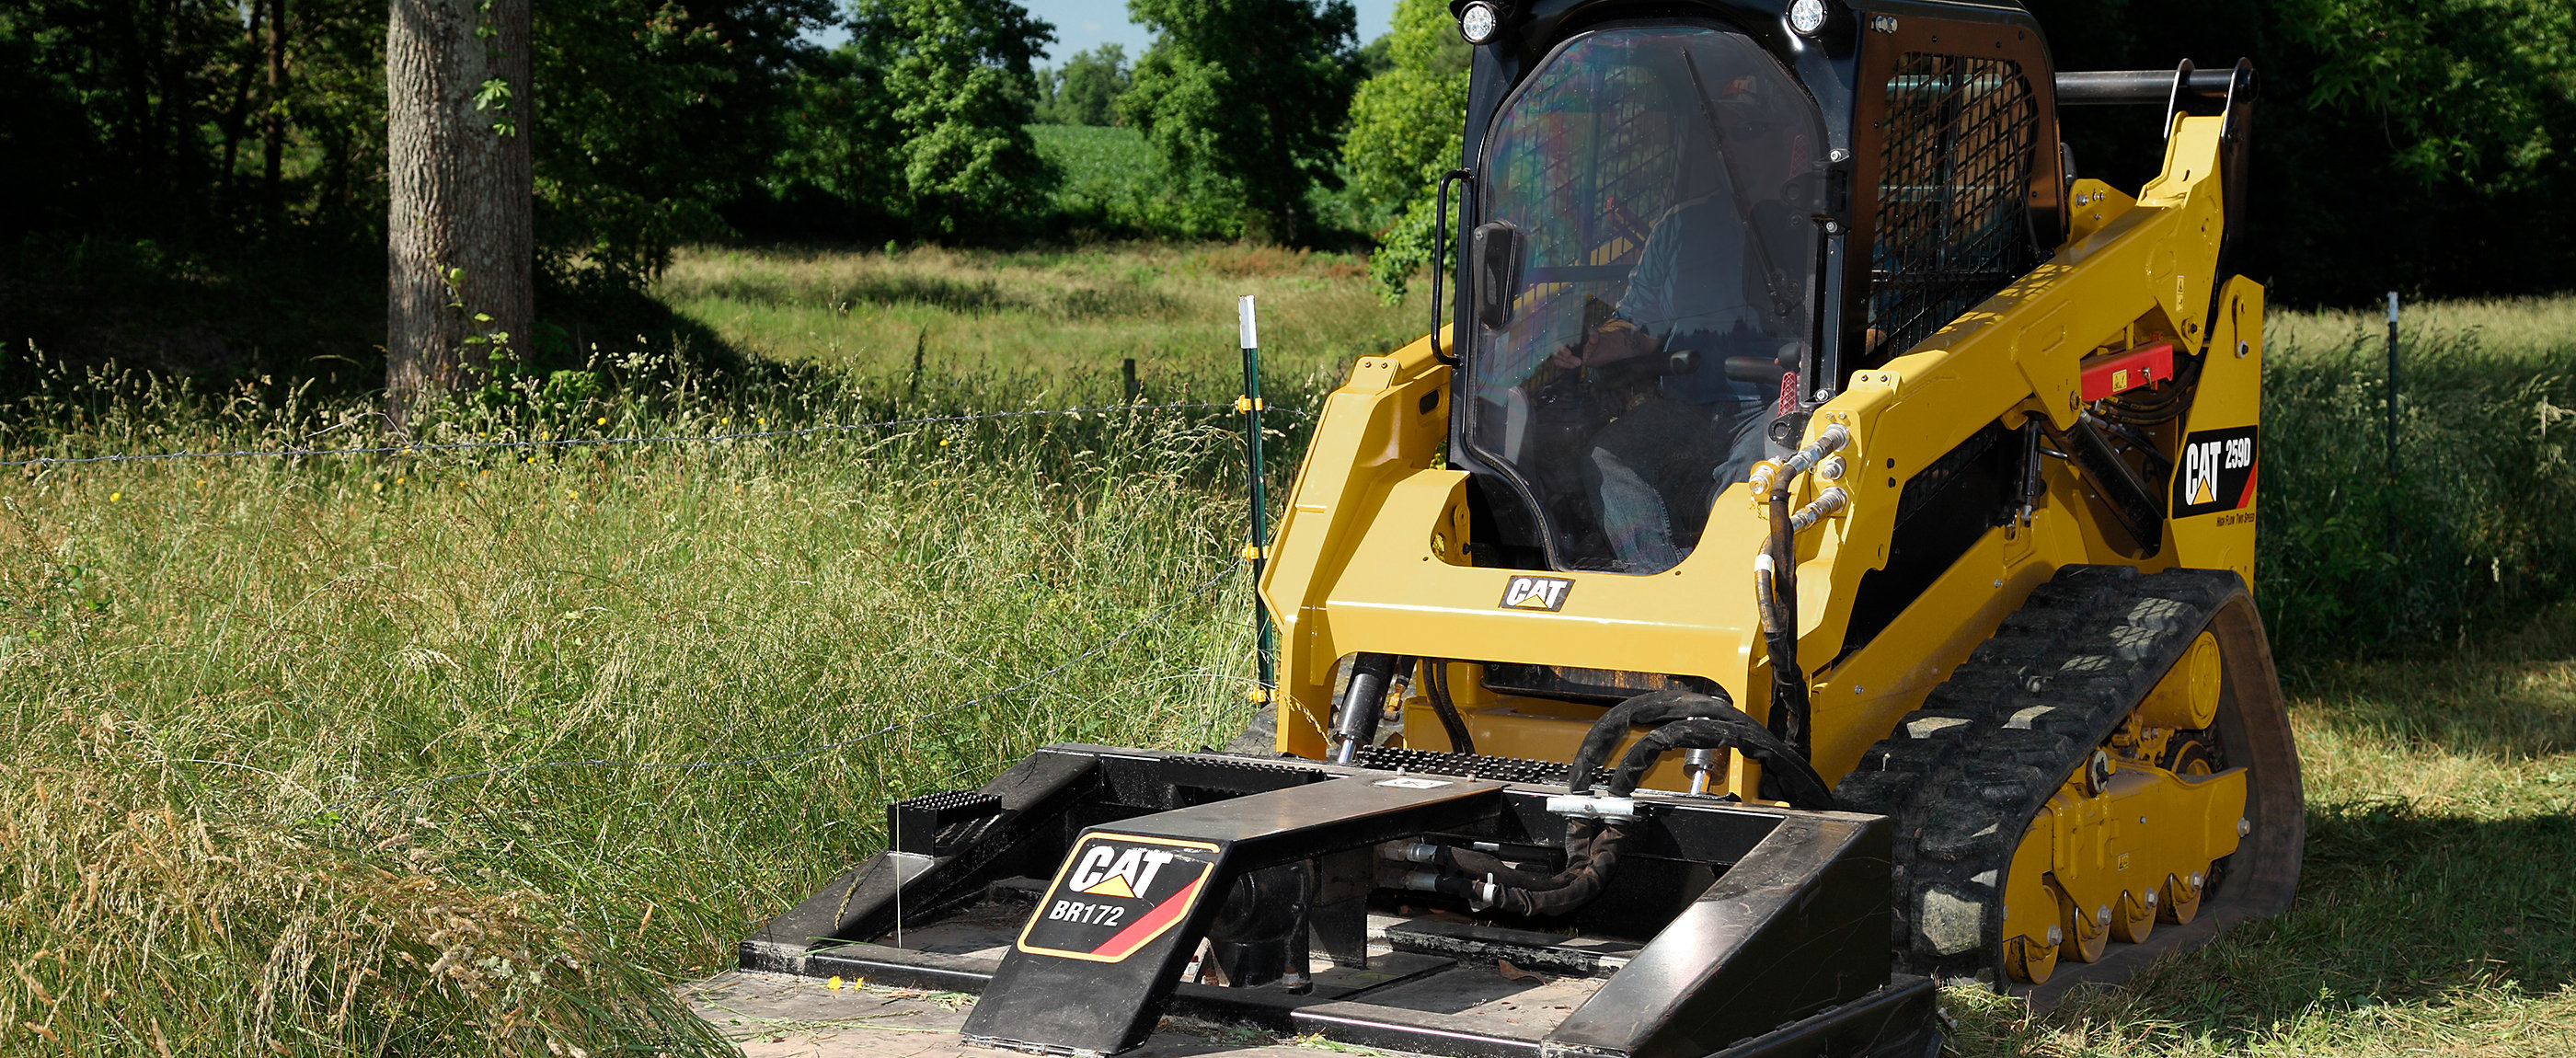 Skid steer loaders and compact track loaders are versatile machines designed for a wide variety of jobs.